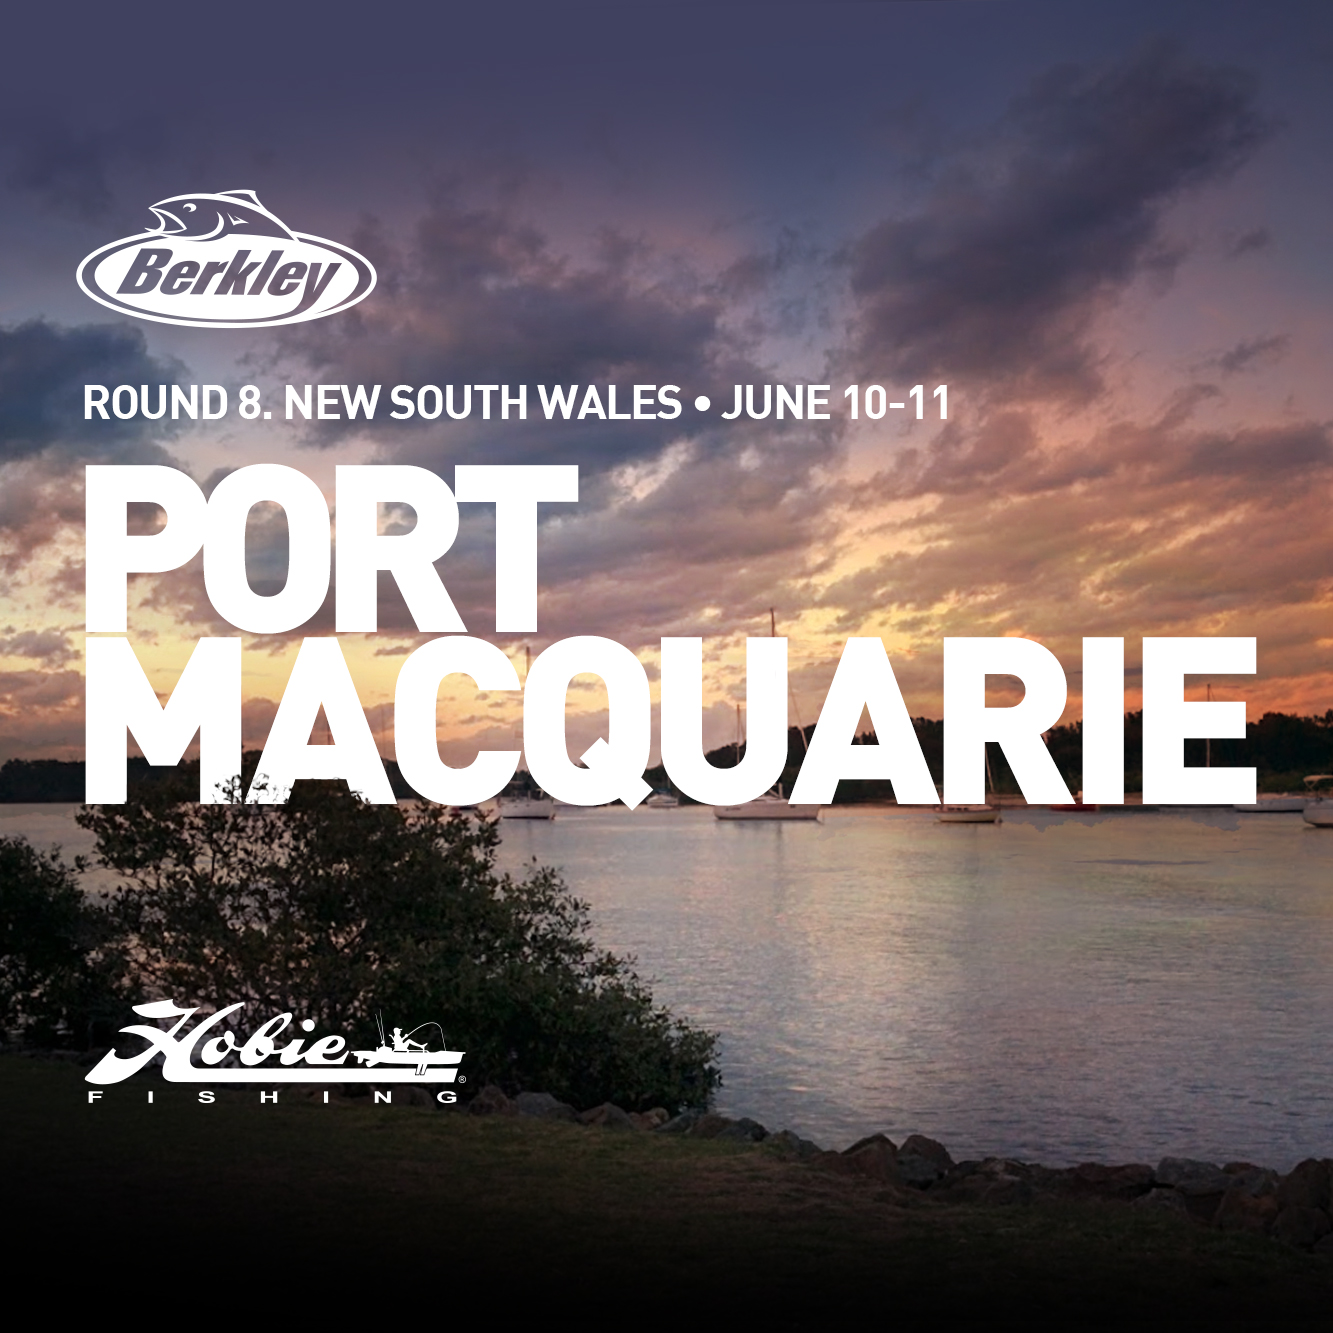 Berkley Round 8. Port Macquarie, NSW.